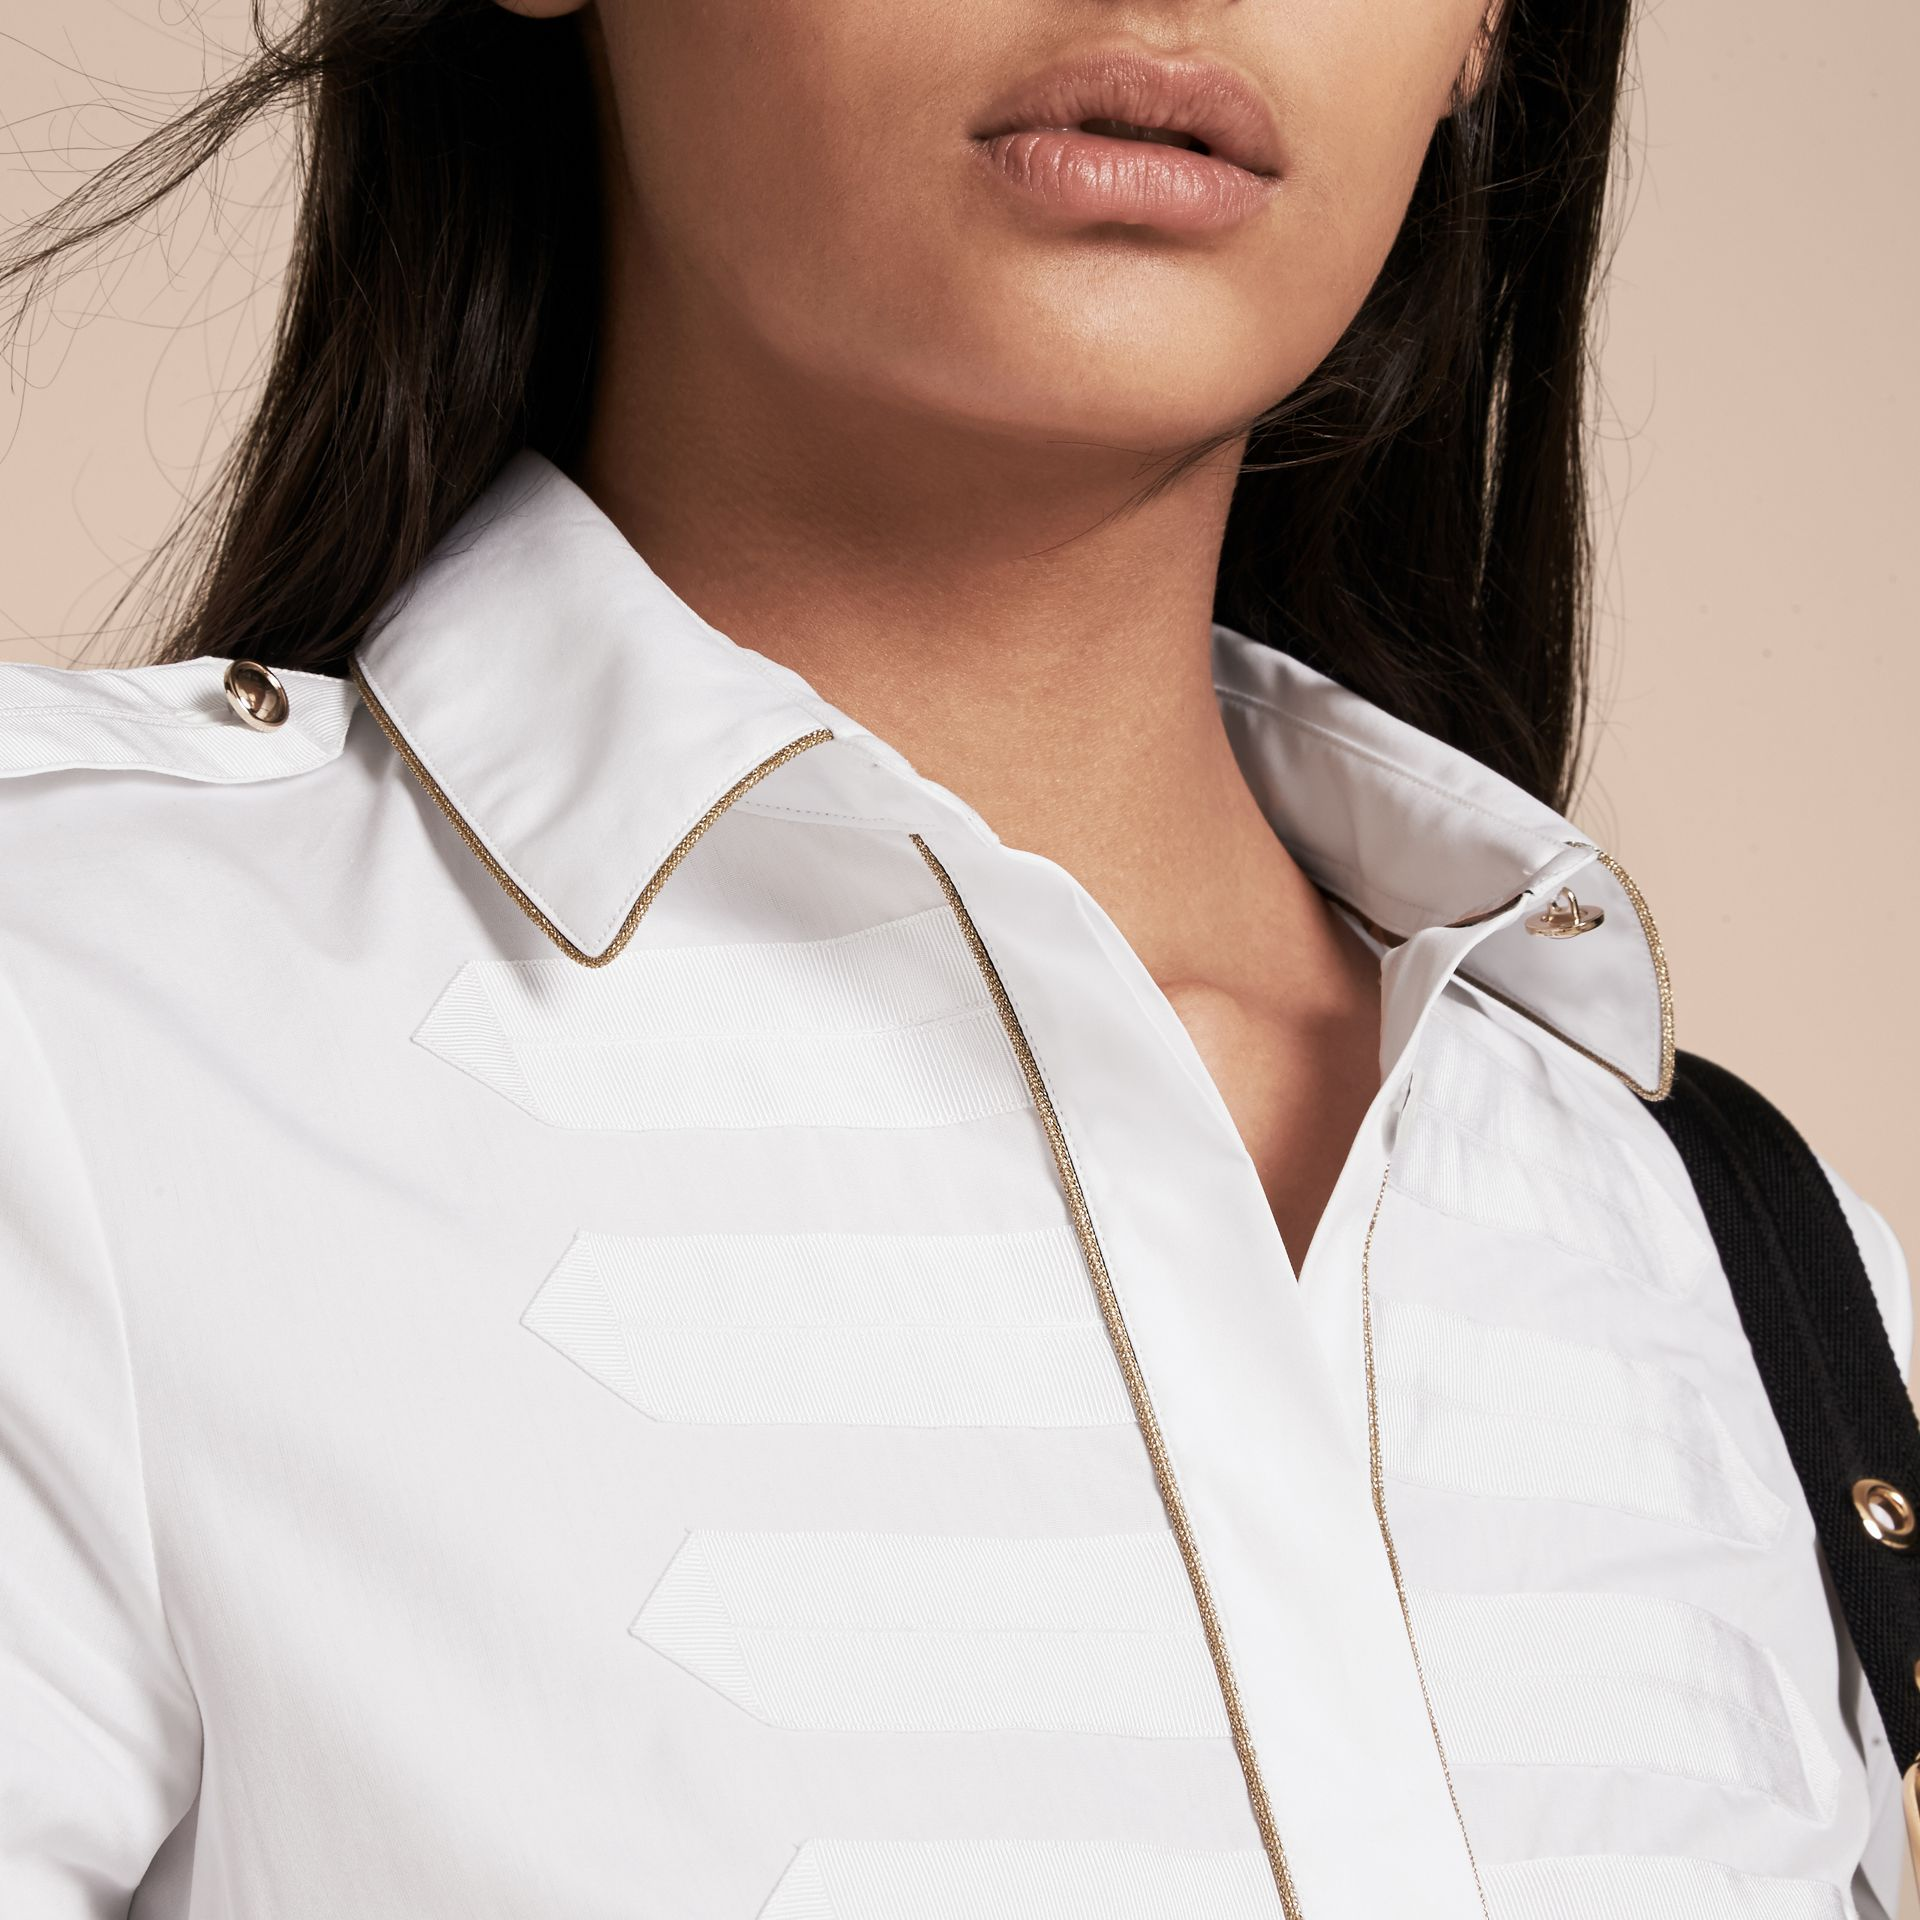 Piped Jacquard Cotton Shirt in White - gallery image 5